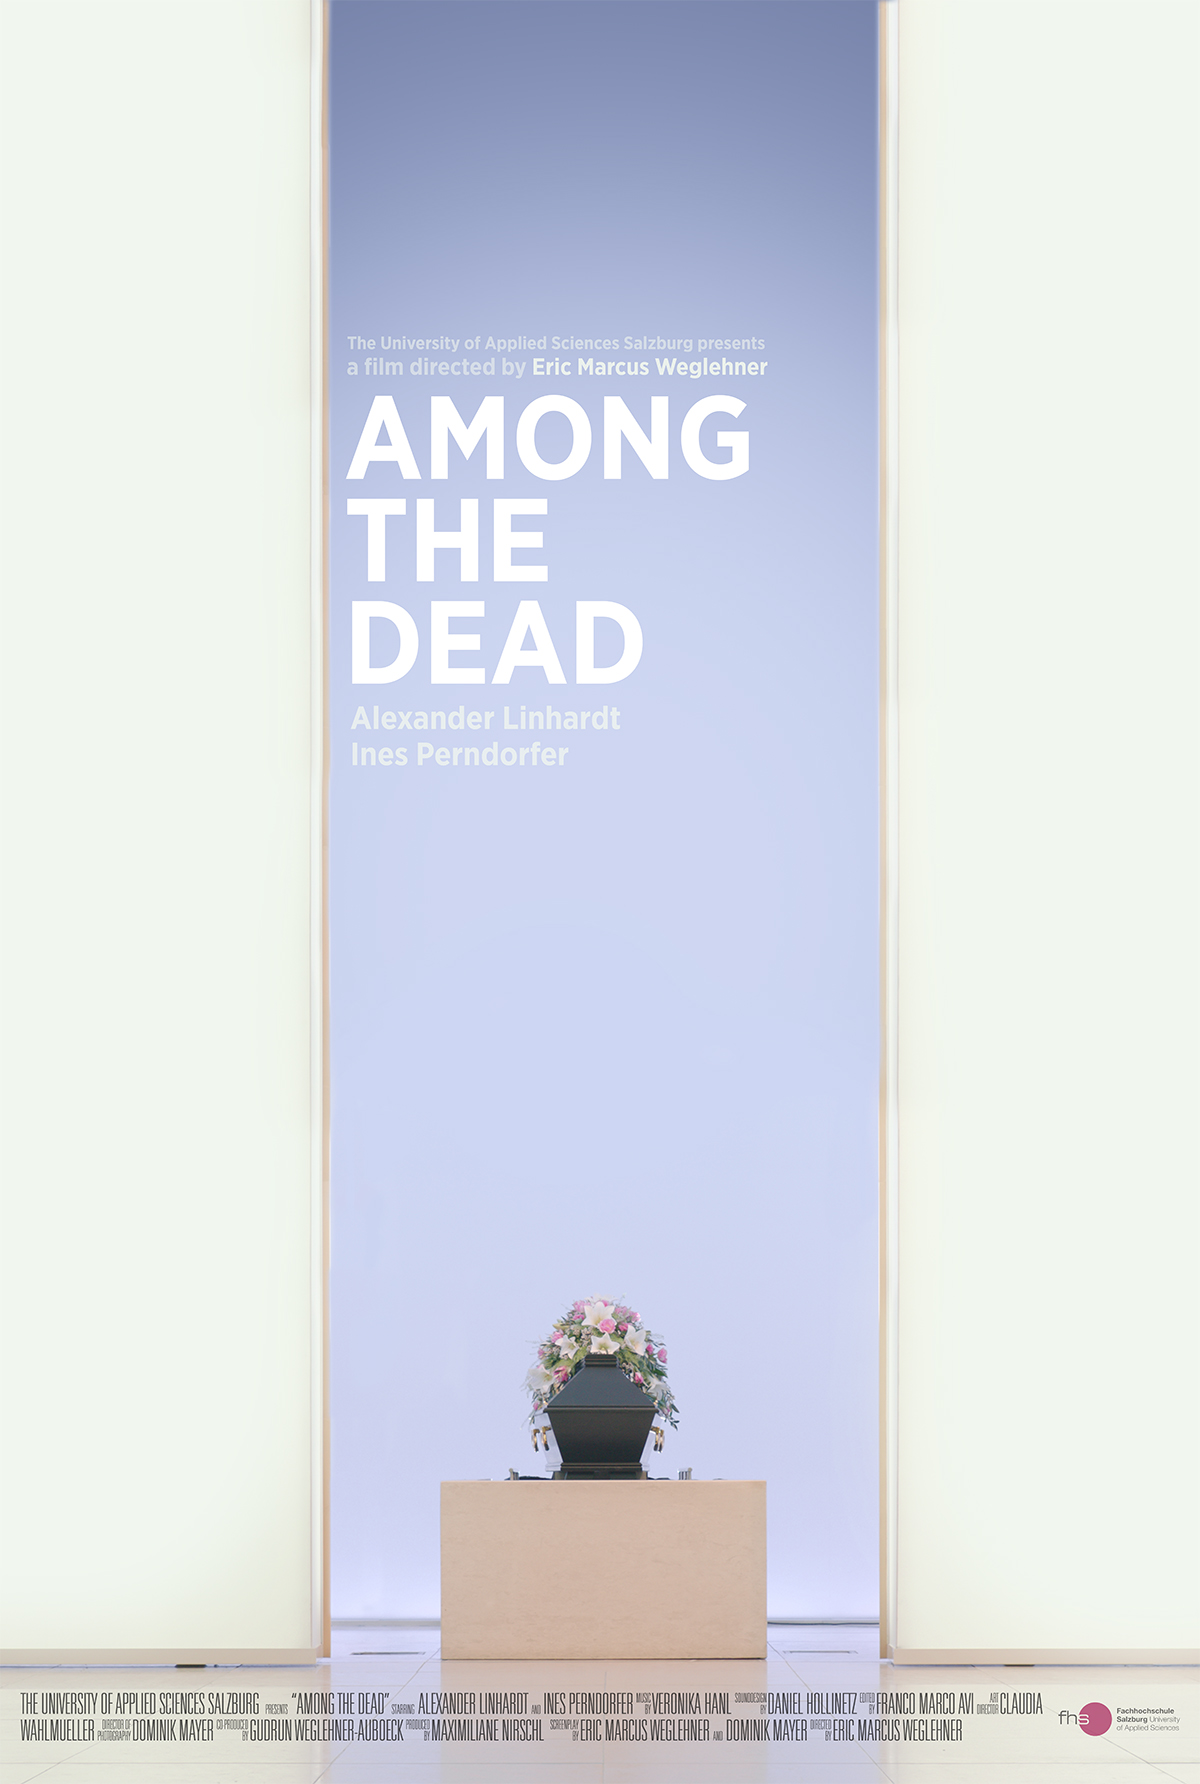 AMONG_THE_DEAD_Poster_EMW.jpg